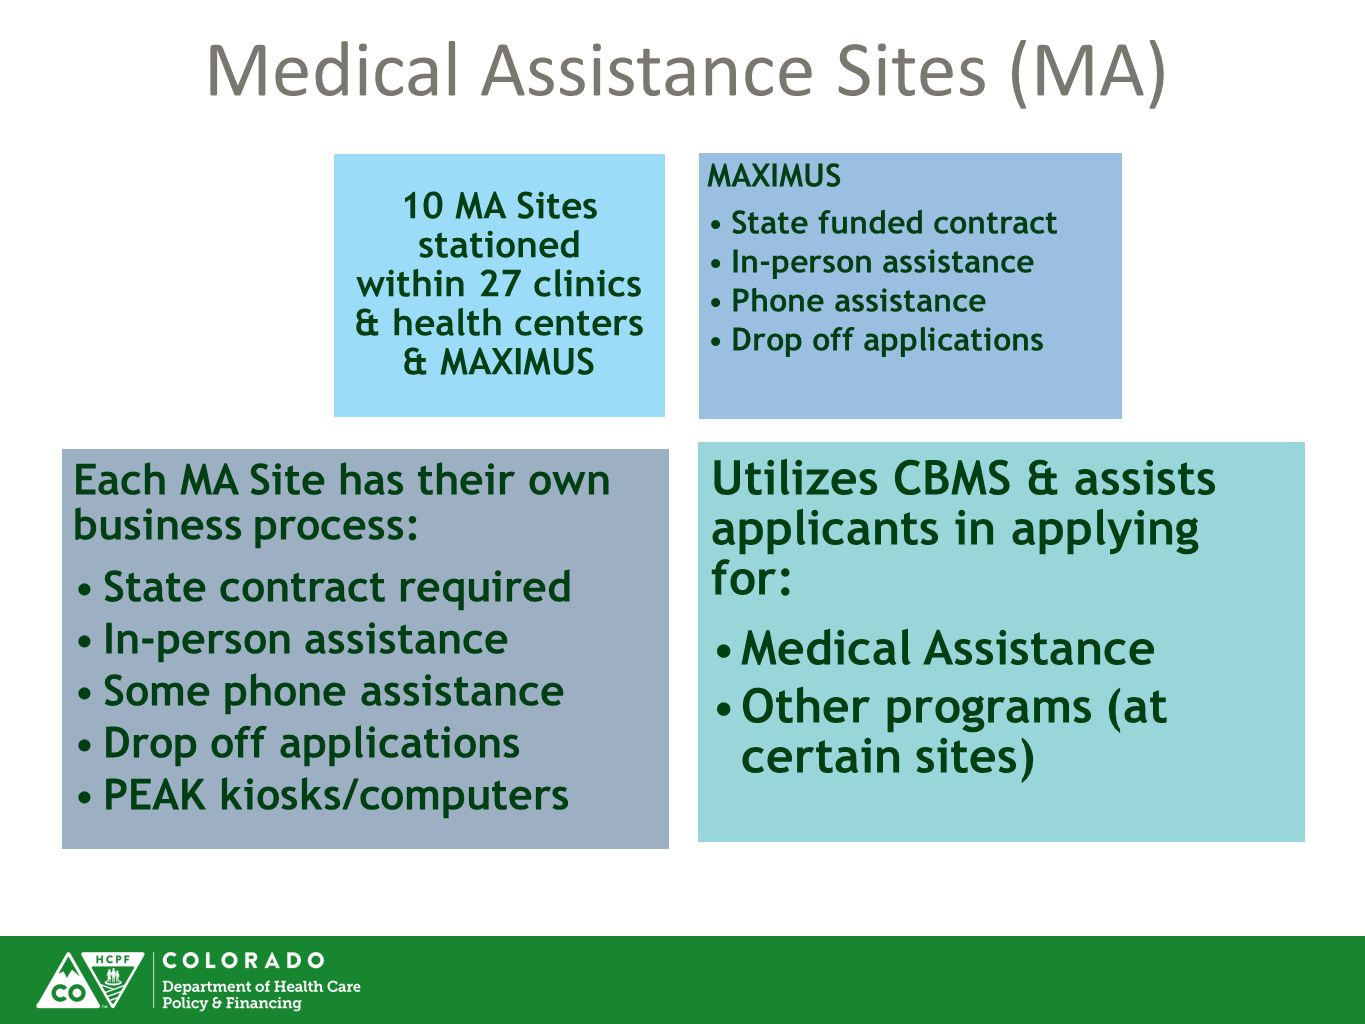 10 MA Sites stationed within 27 clinics & health centers & MAXIMUS